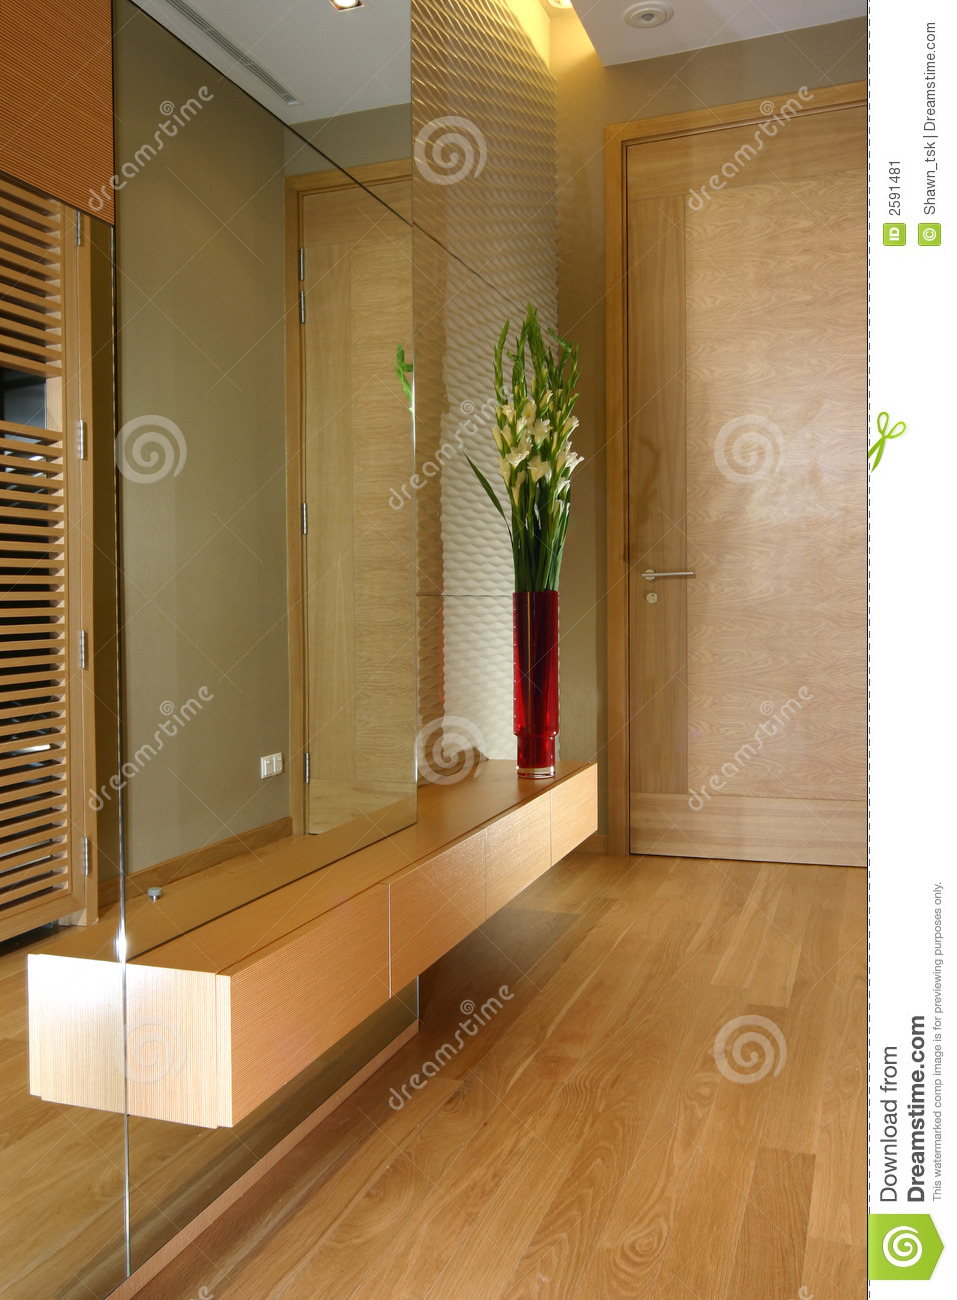 Interior Design Foyer Stock Image Image 2591481